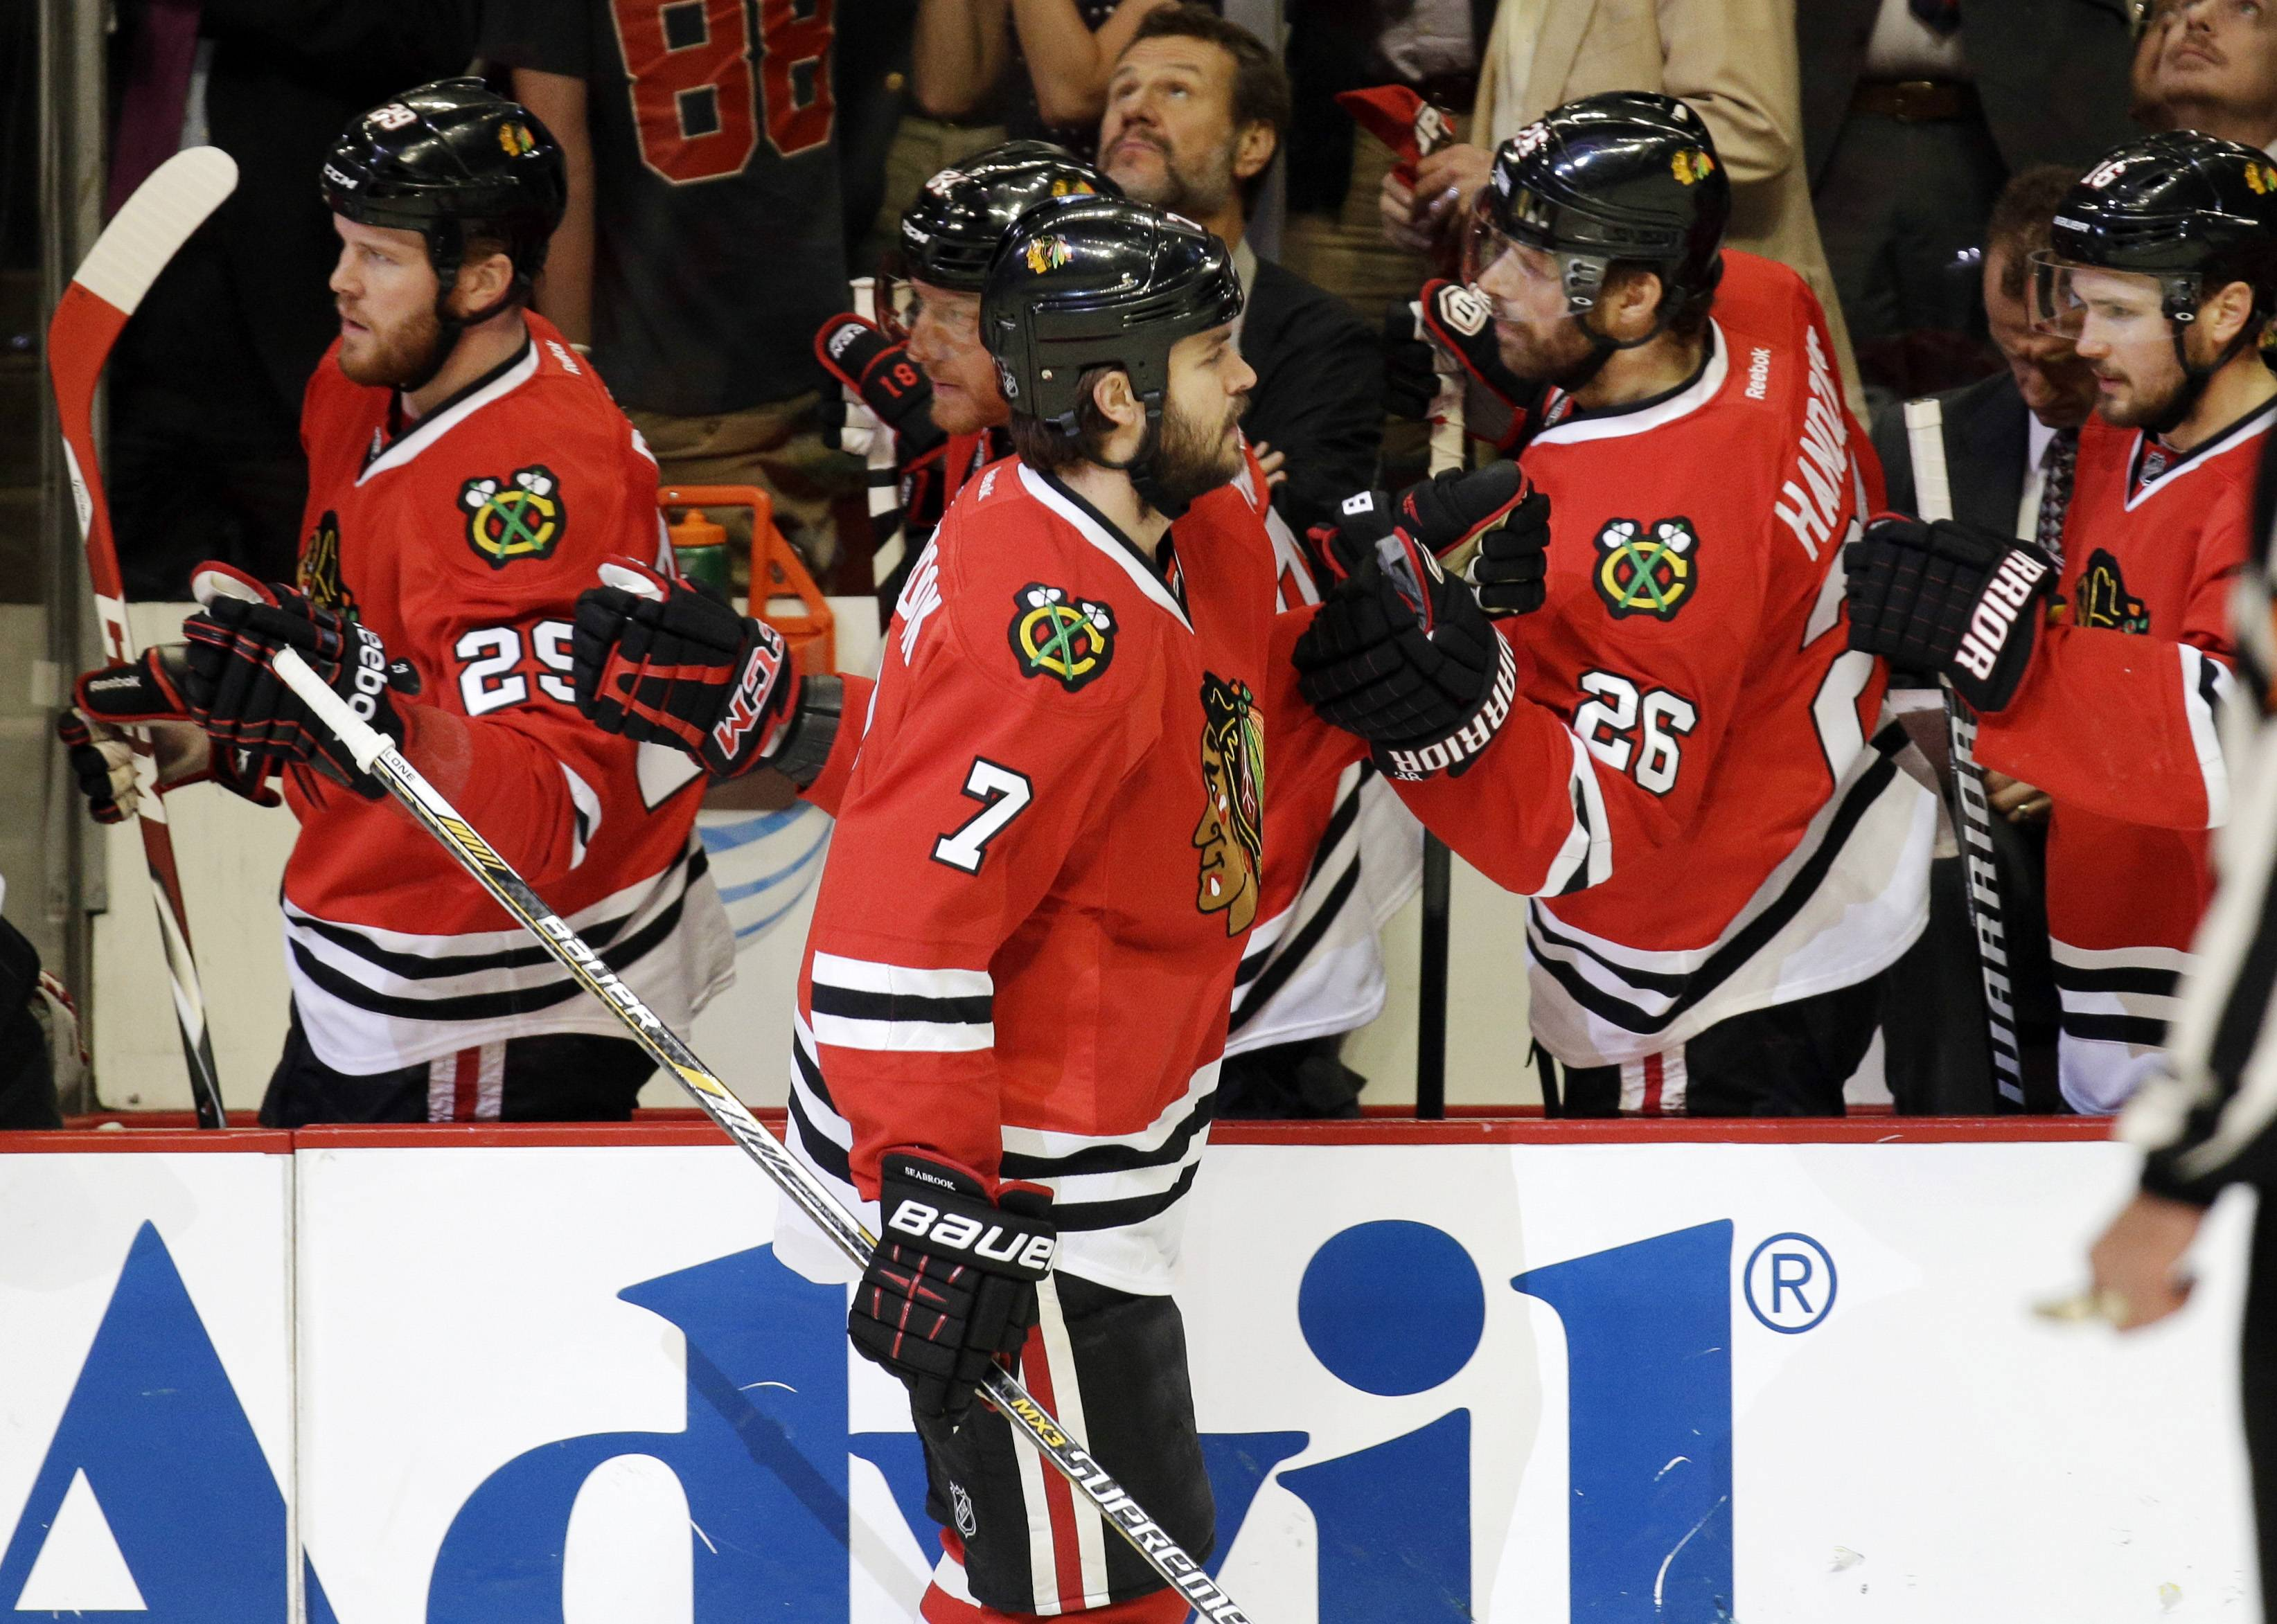 Chicago Blackhawks defenseman Brent Seabrook celebrates a goal with his teammates during the first period in Game 5 of the Western Conference finals against the Los Angeles Kings in the NHL hockey Stanley Cup playoffs Wednesday, May 28, 2014, in Chicago.